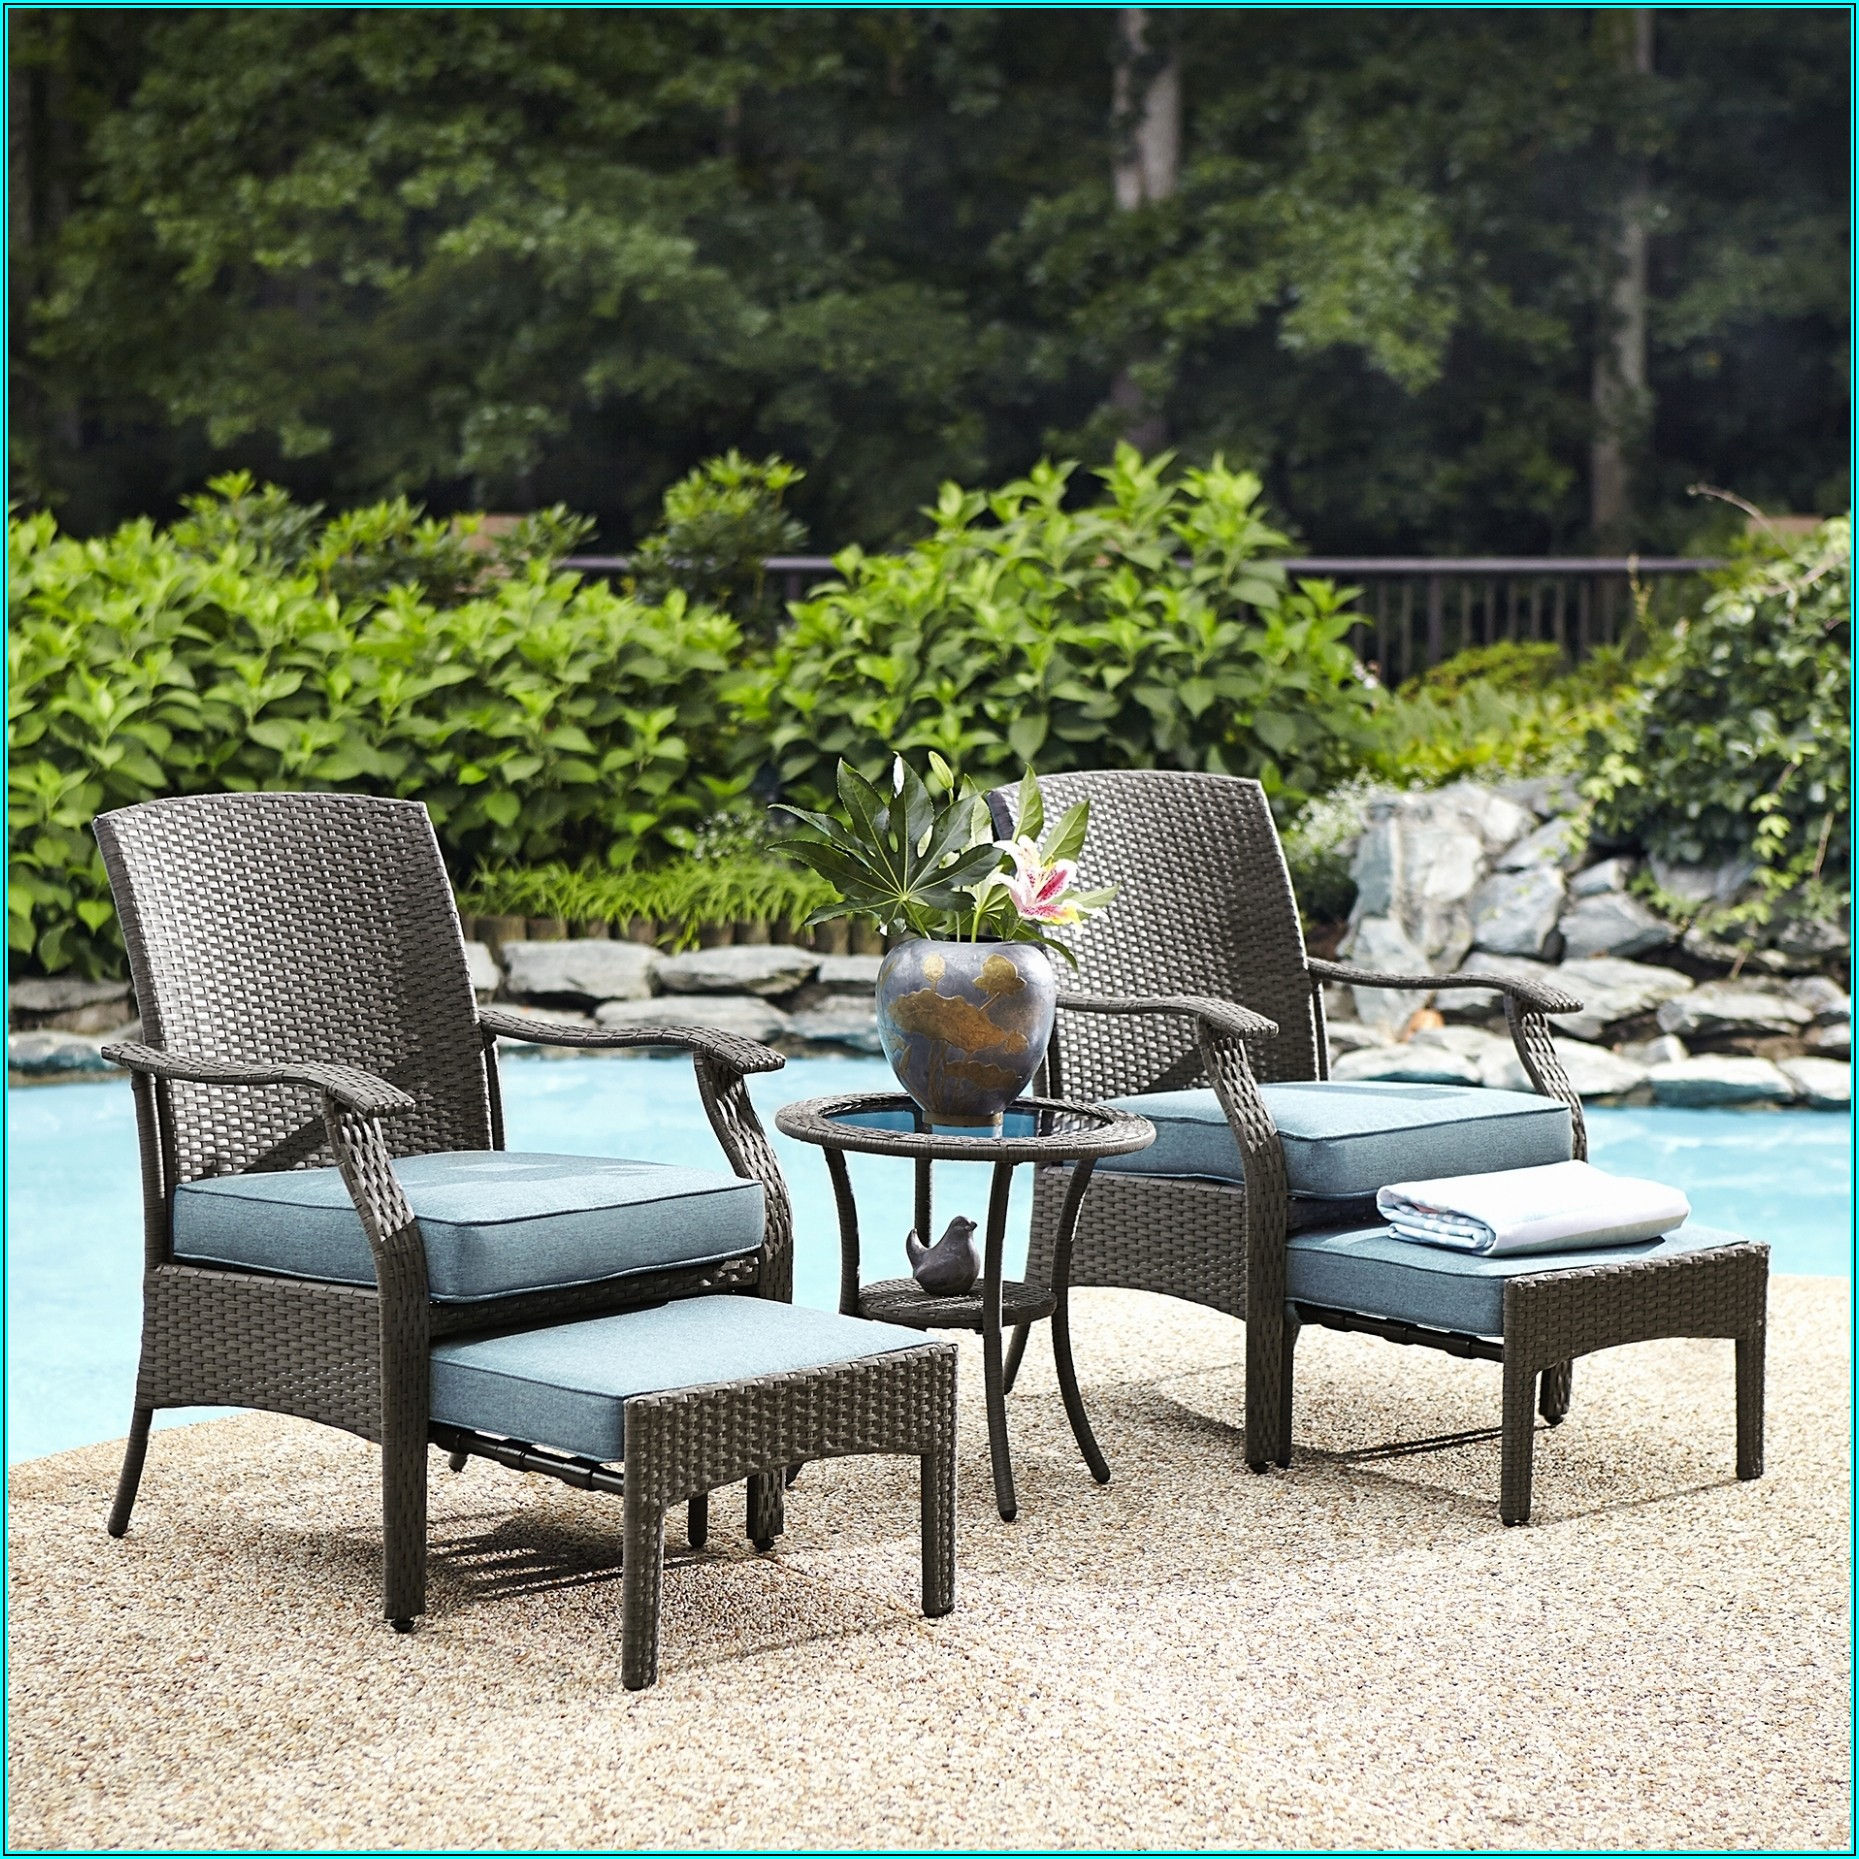 Best Long Lasting Patio Furniture